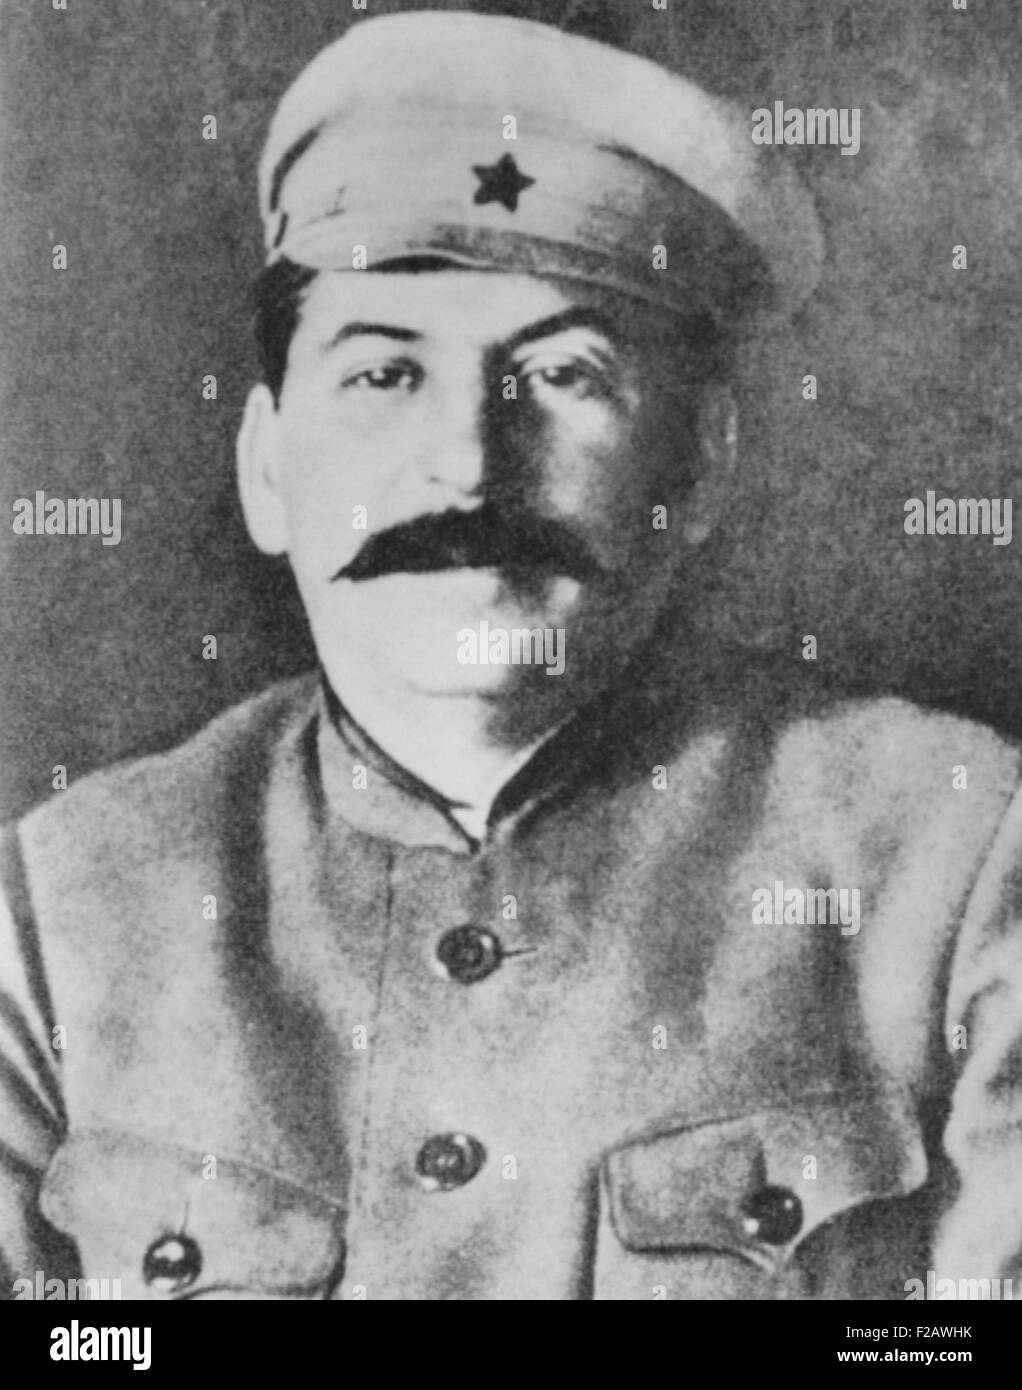 Josef Stalin in the uniform of the Red Army, ca. 1920. (CSU_2015_11_1371) - Stock Image